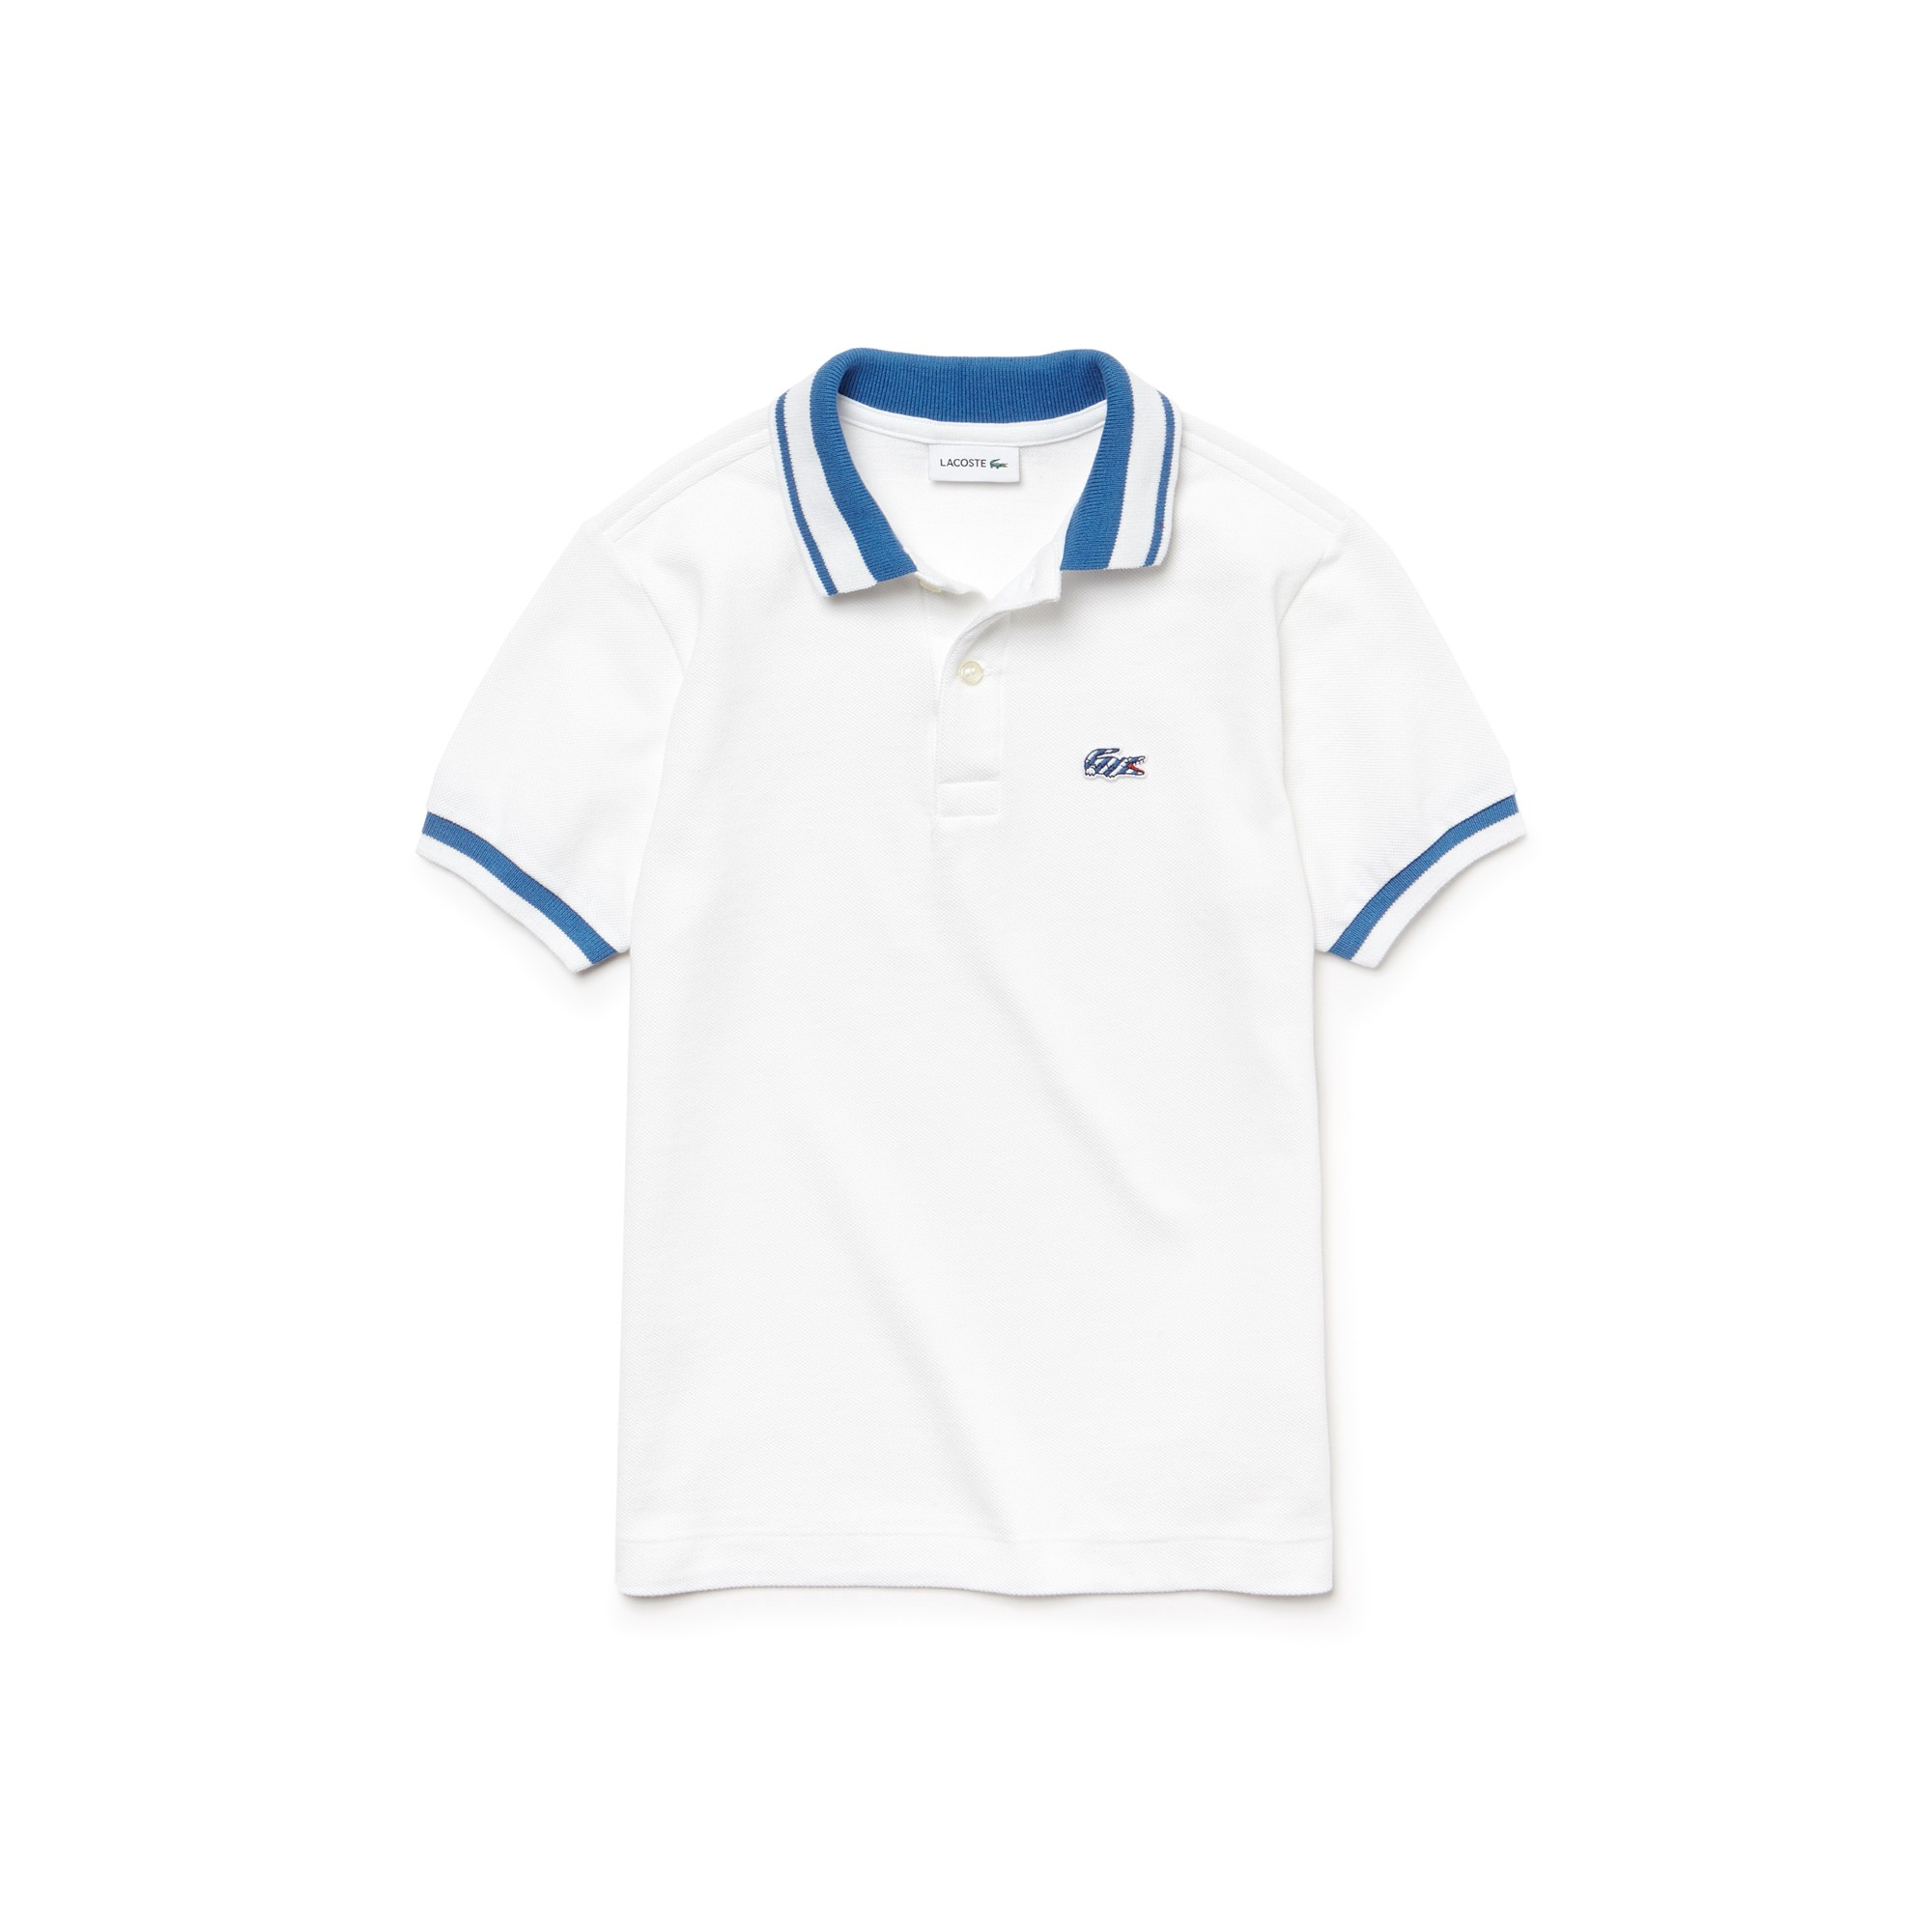 076b3406d Lacoste Boy's Candy Striped Cotton Polo Shirt - Elysee Blue/White 14 Years